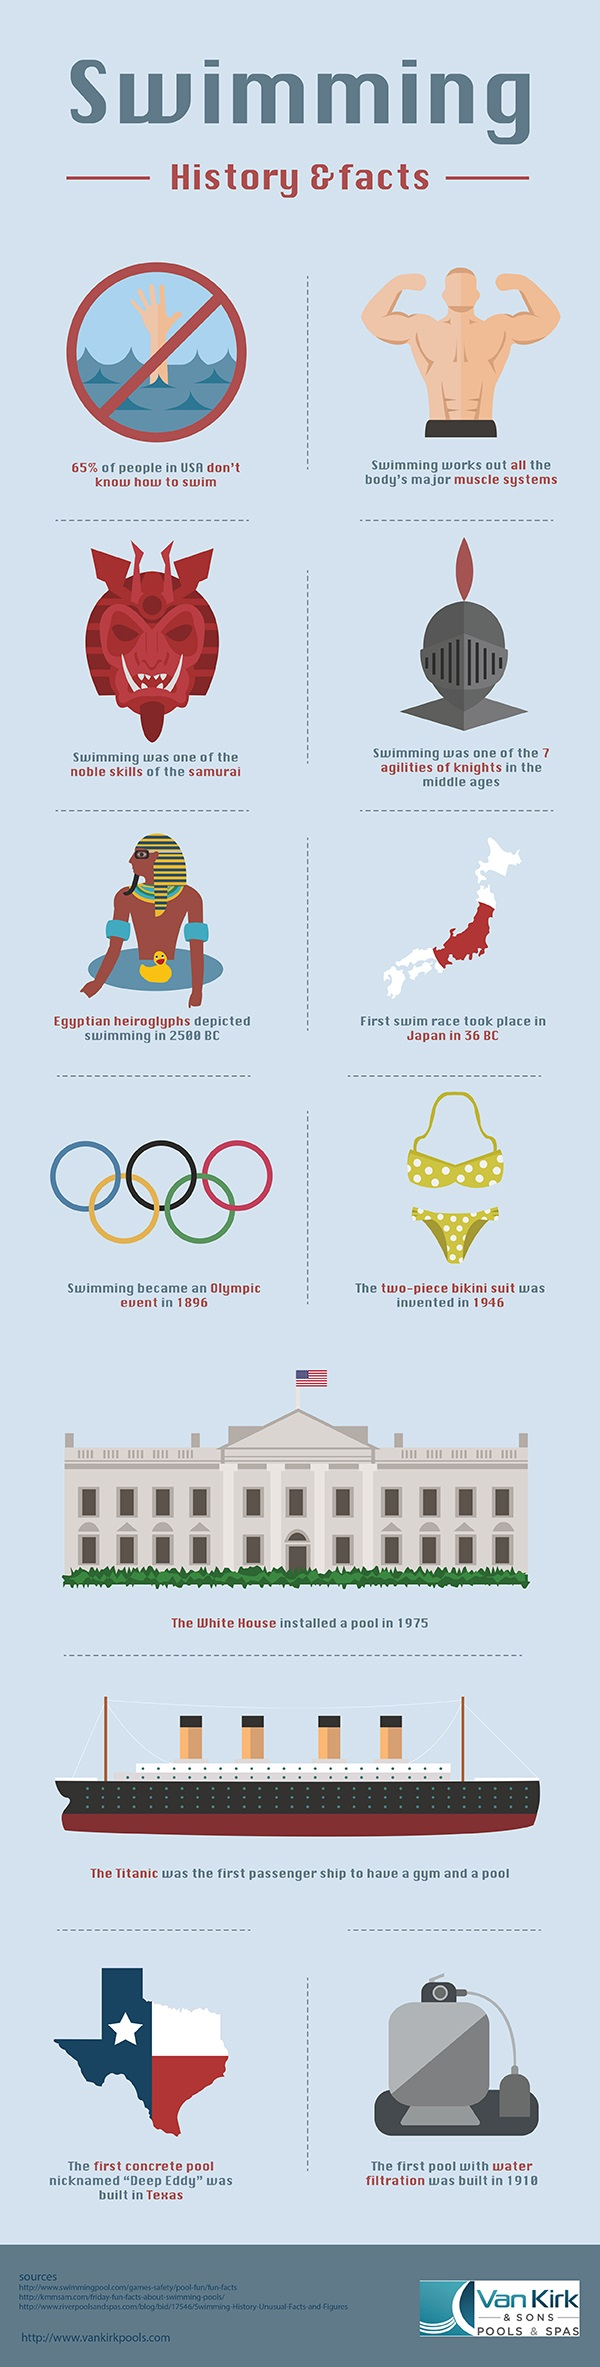 swimming facts infographic